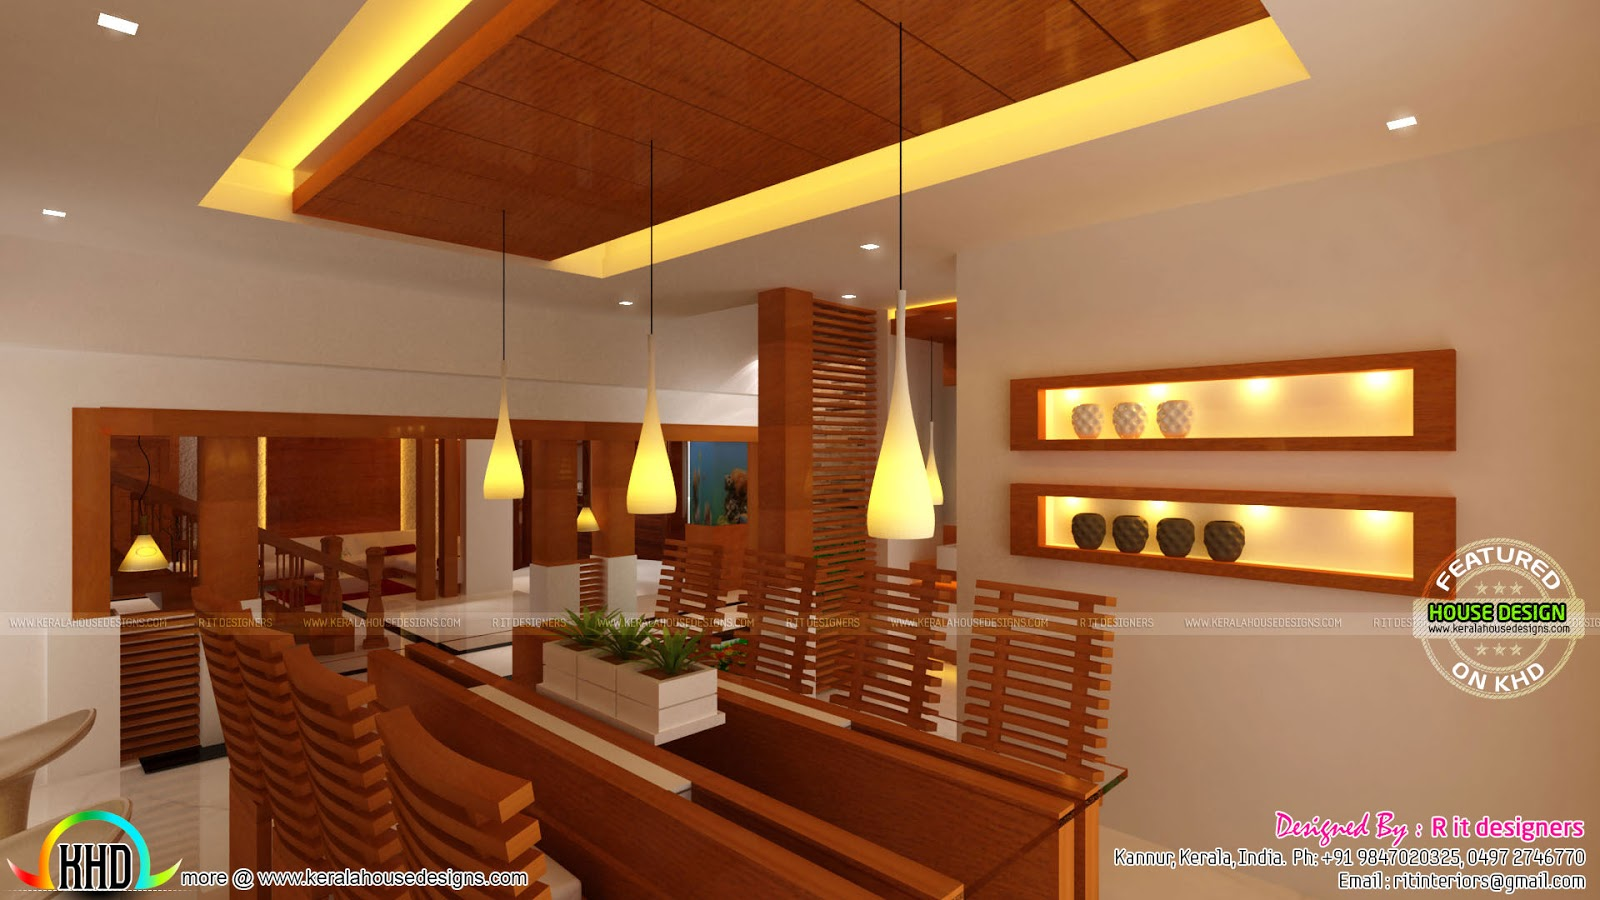 Wooden finish interior designs kerala home design and for Dining room ideas kerala